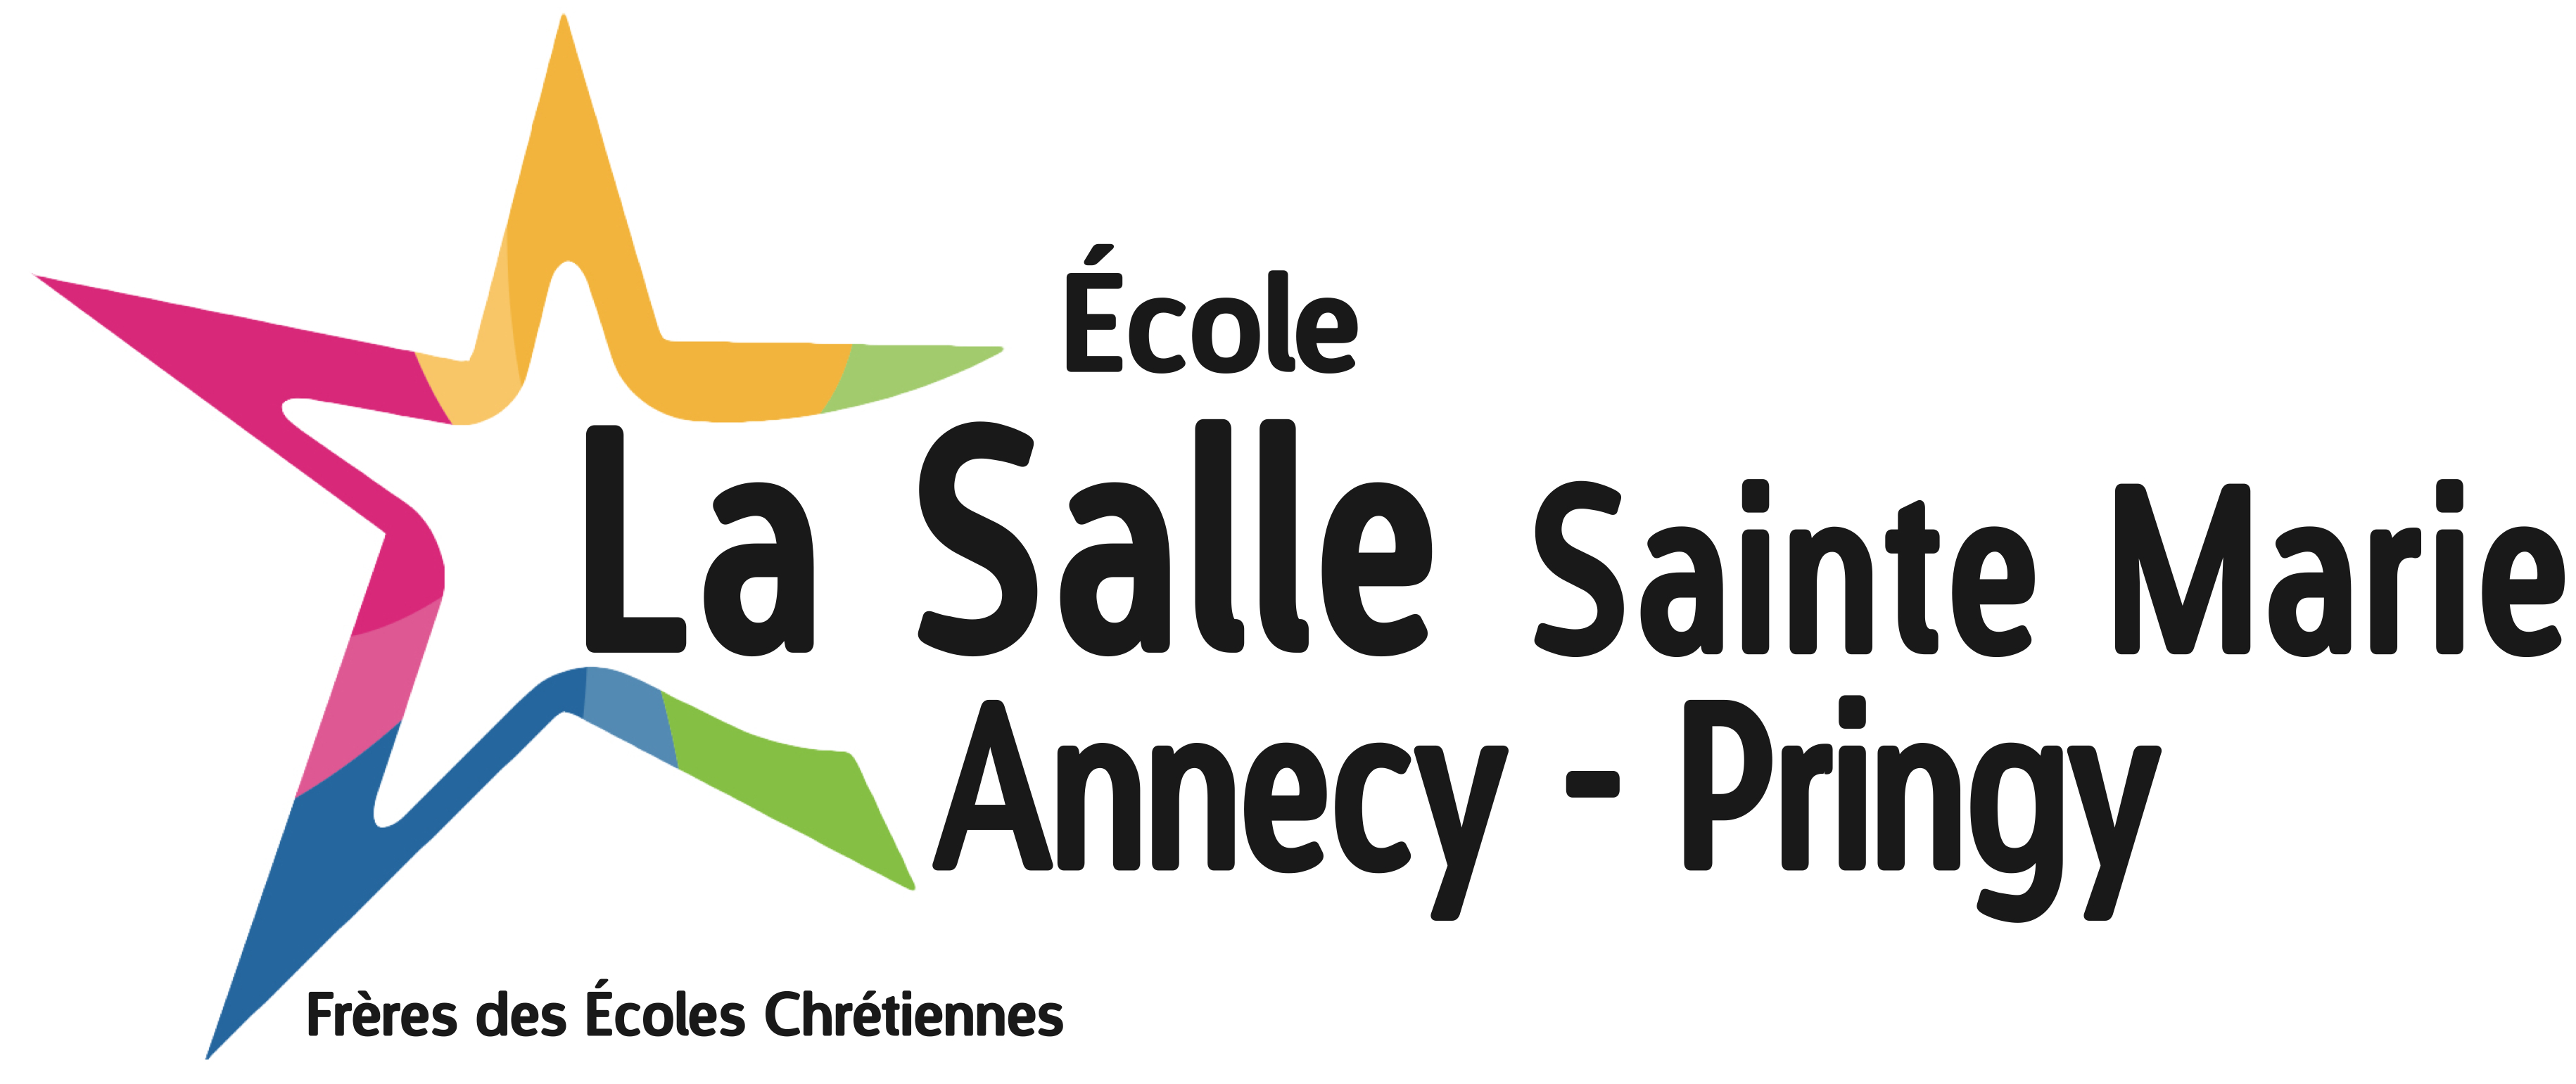 ECOLE ANNECY PRINGY 2017